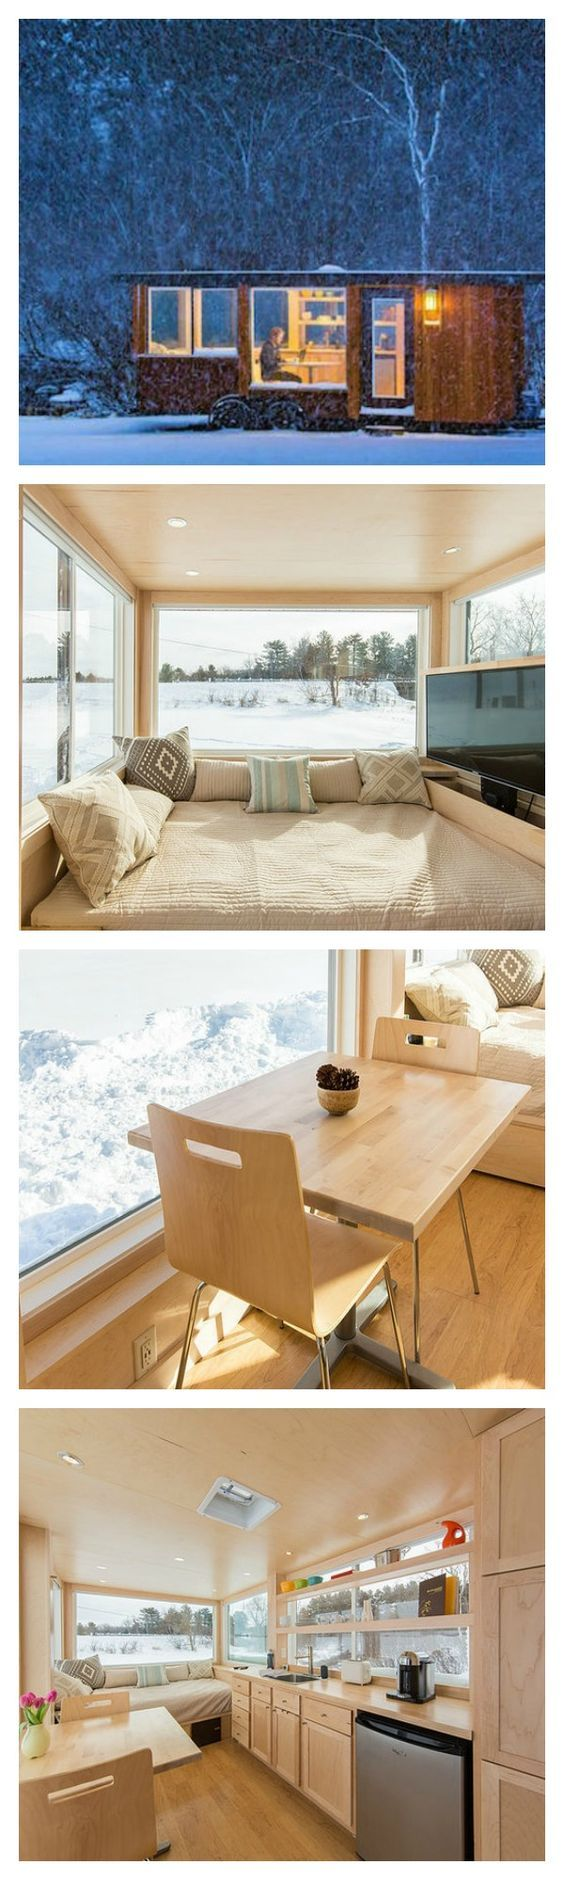 best Small Space Efficiency images on Pinterest